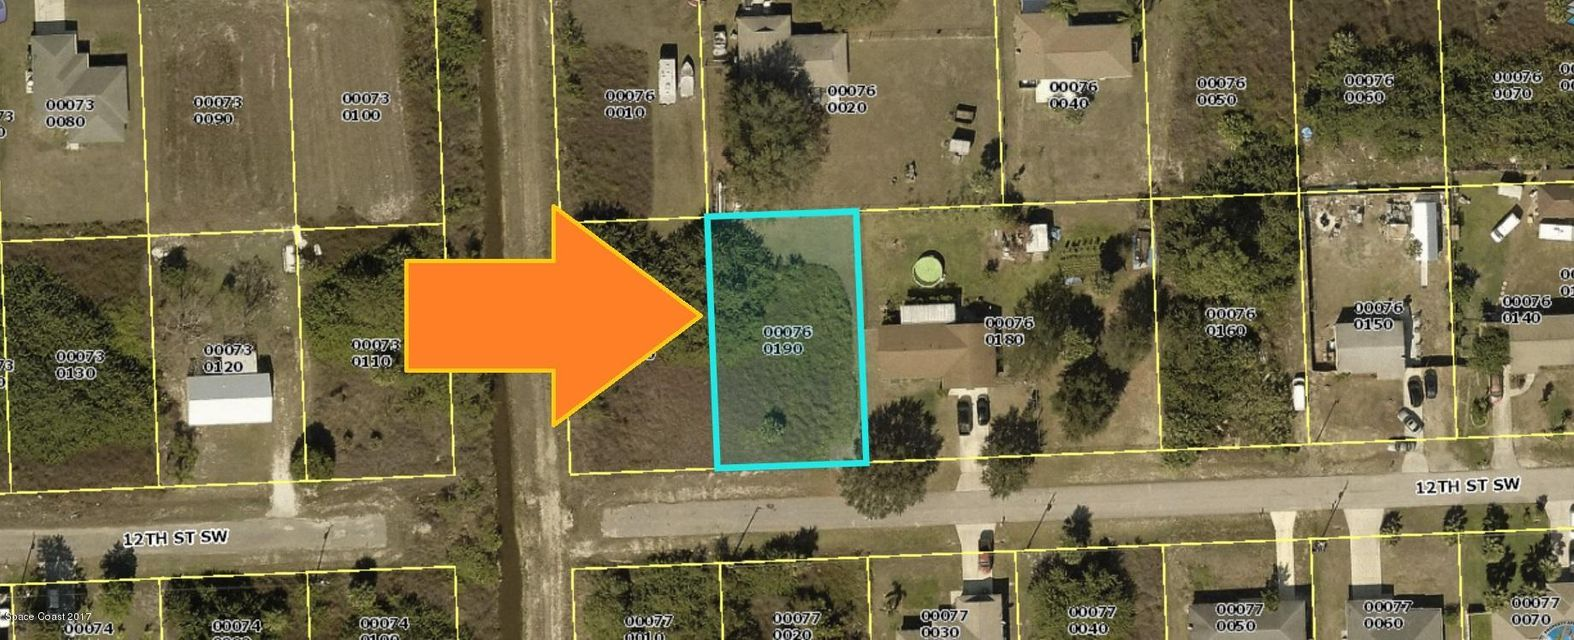 Land for Sale at 3916 12th 3916 12th Lehigh Acres, Florida 33974 United States